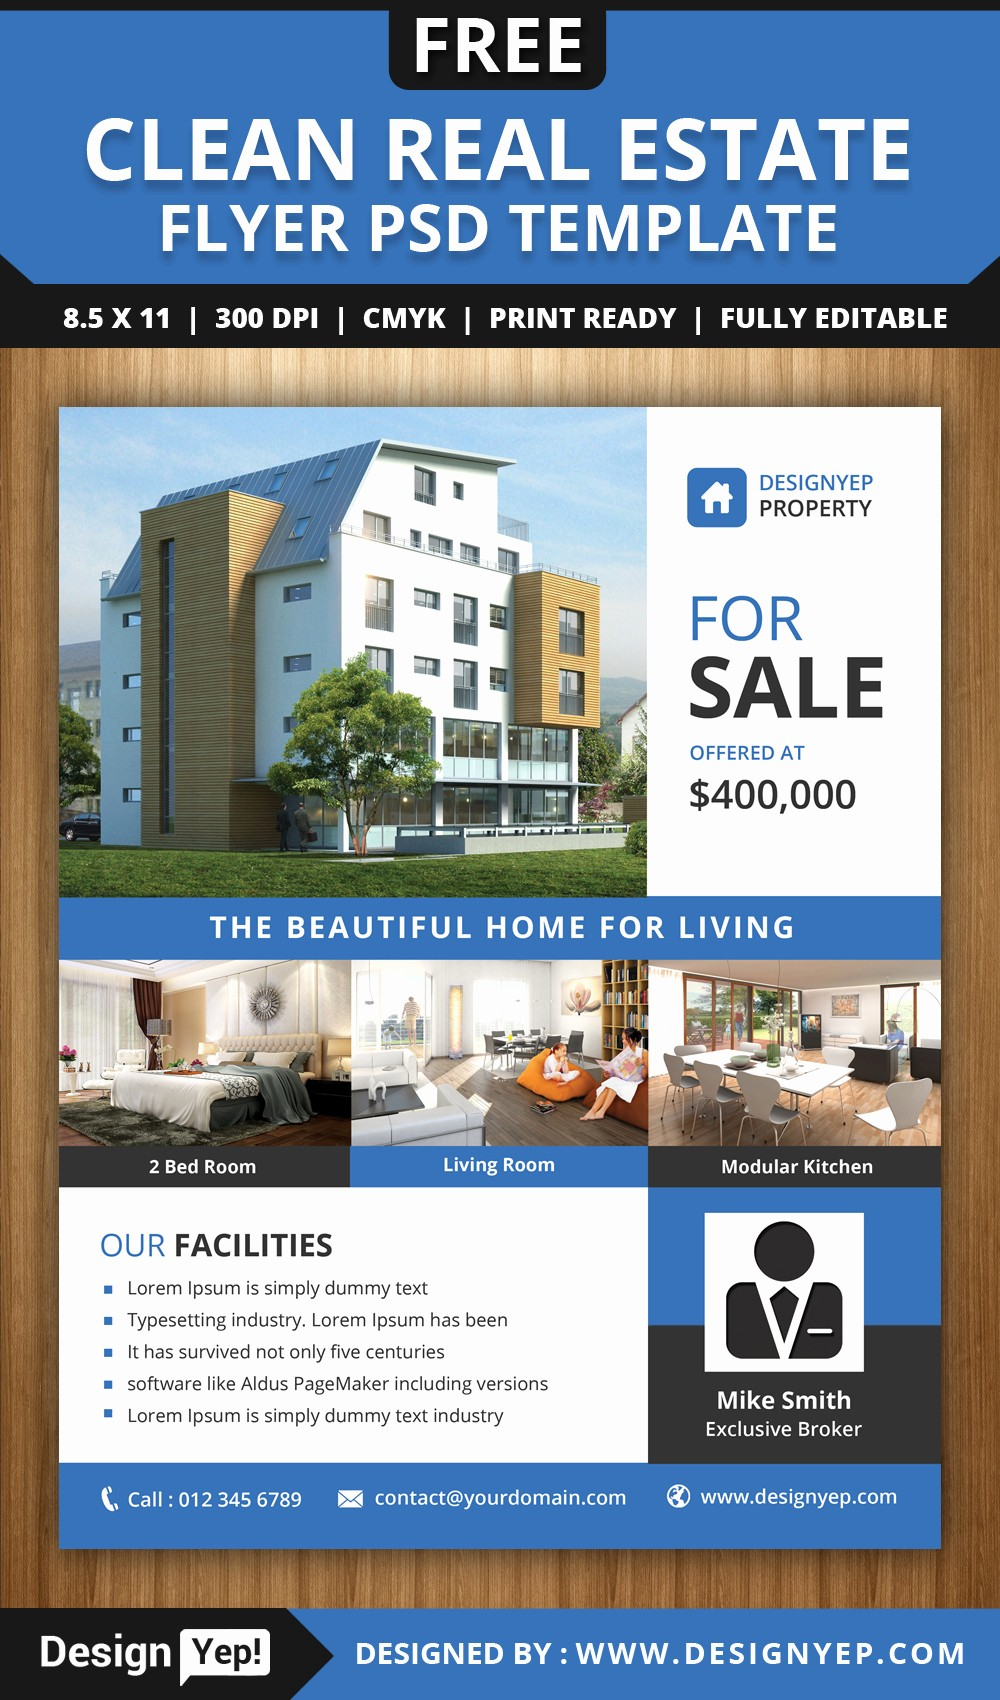 For Rent Flyer Template Free Lovely Design Templates Archives Templatesp